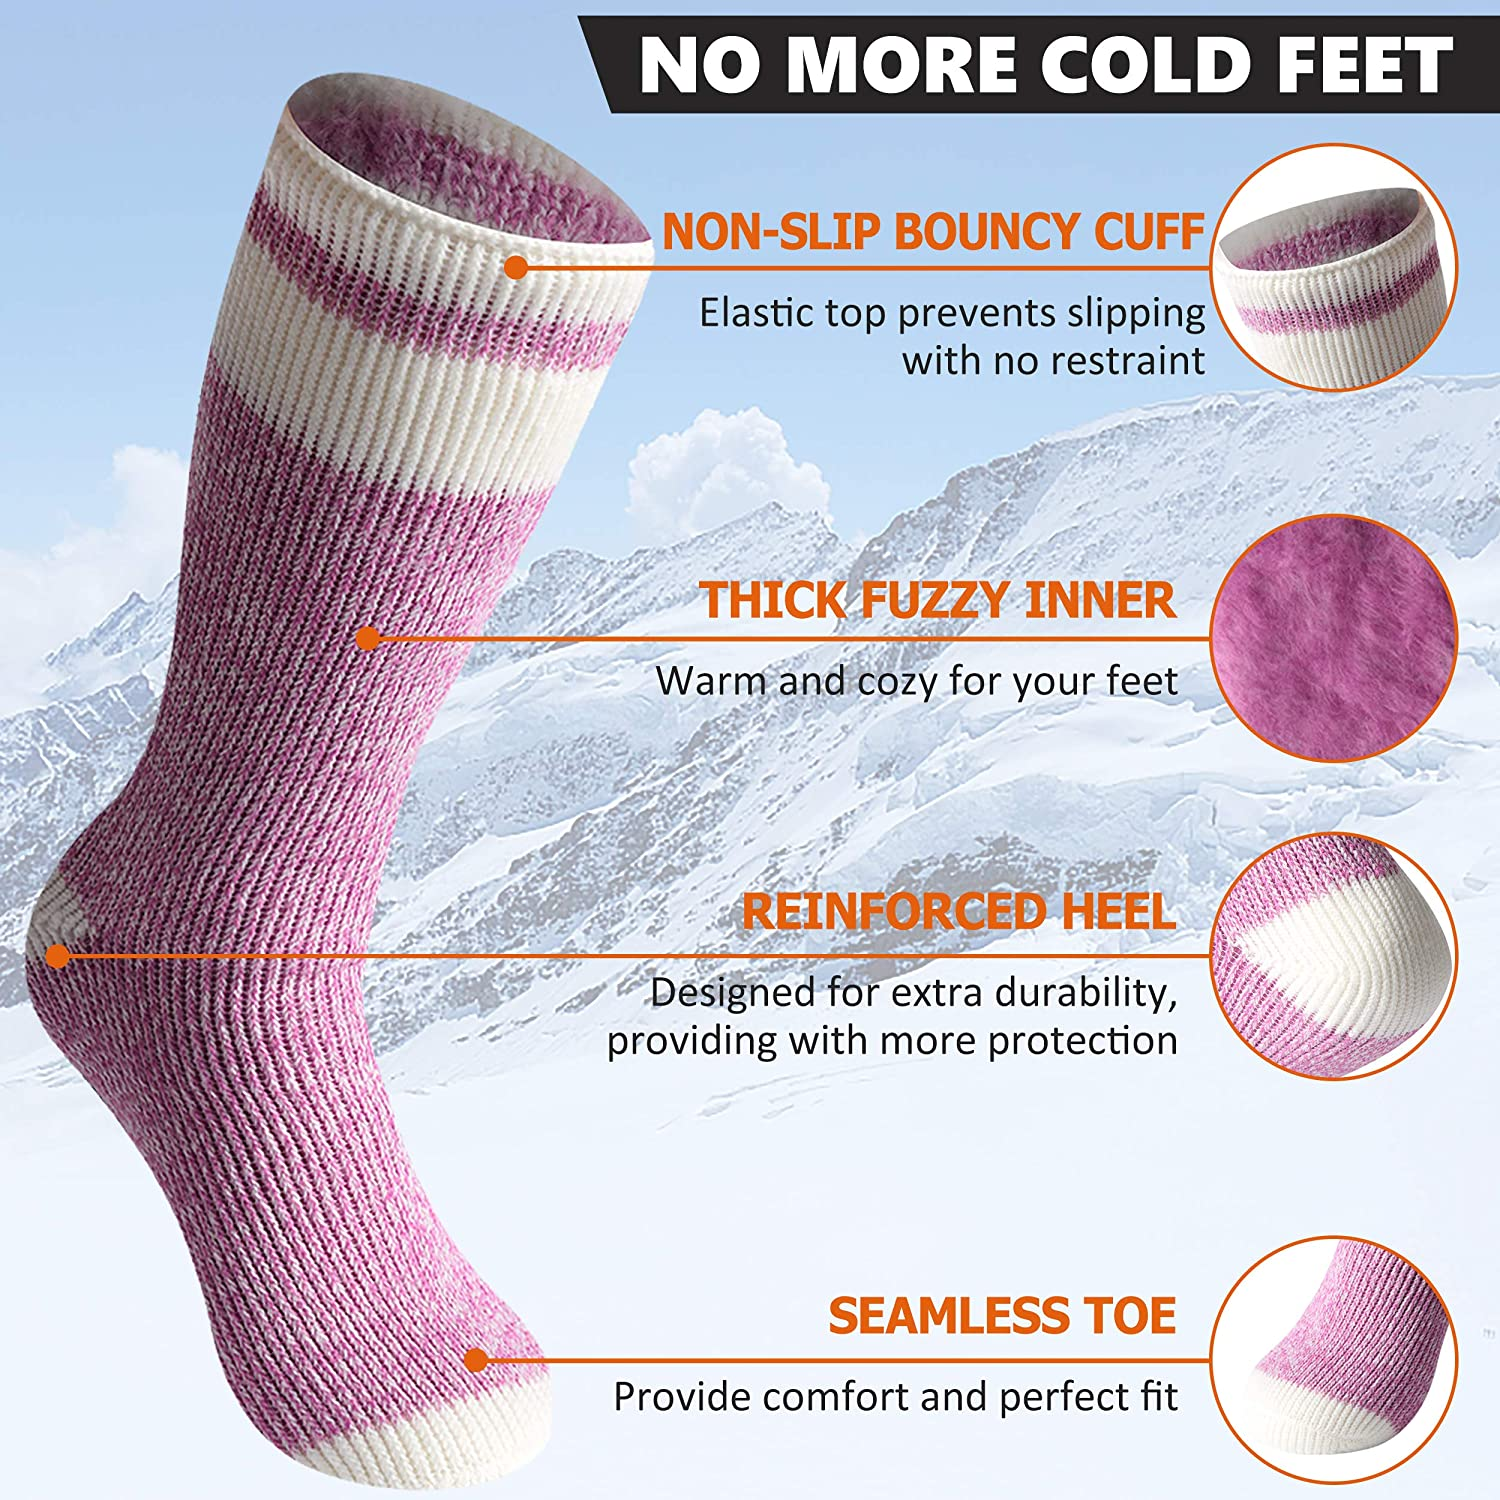 Bun Large Warm Thermal Socks Winter Unisex Thick Insulated Heated Socks for Cold Weather 1 Pair